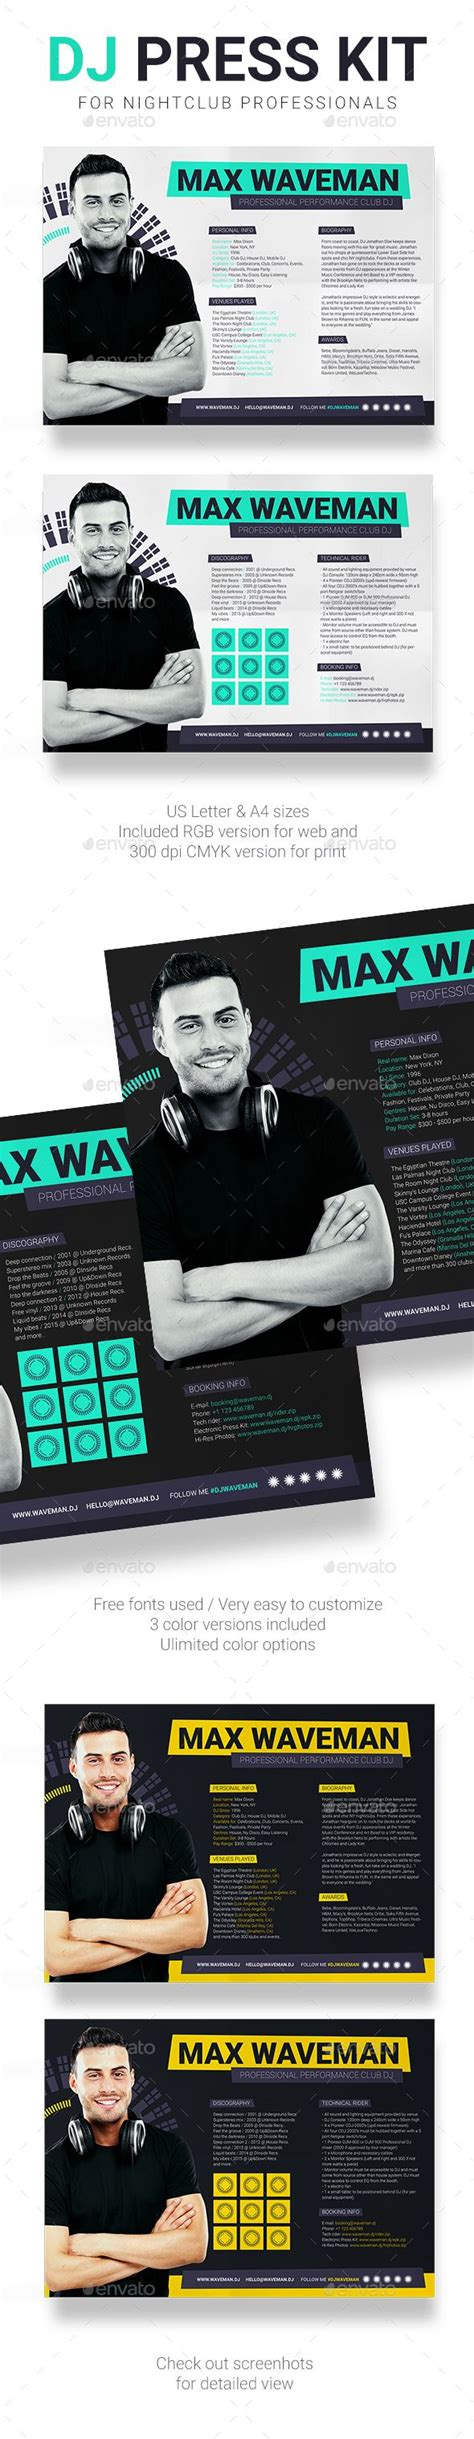 dj rider template 1000 images about dj press kit and dj resume templates on